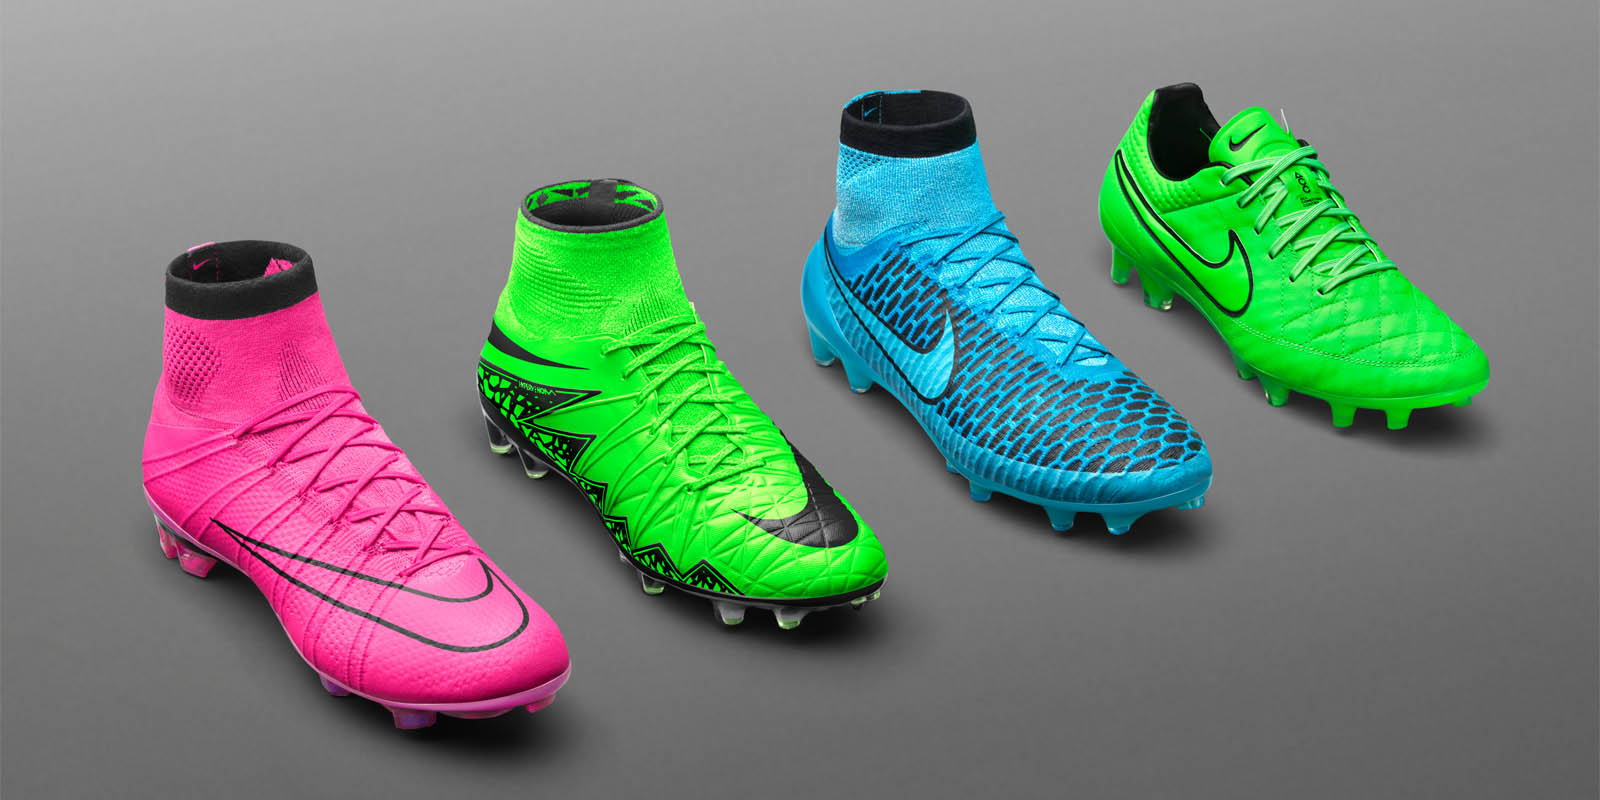 Nike Lightning Storm Pack 2015-2016 Boots Collection Released